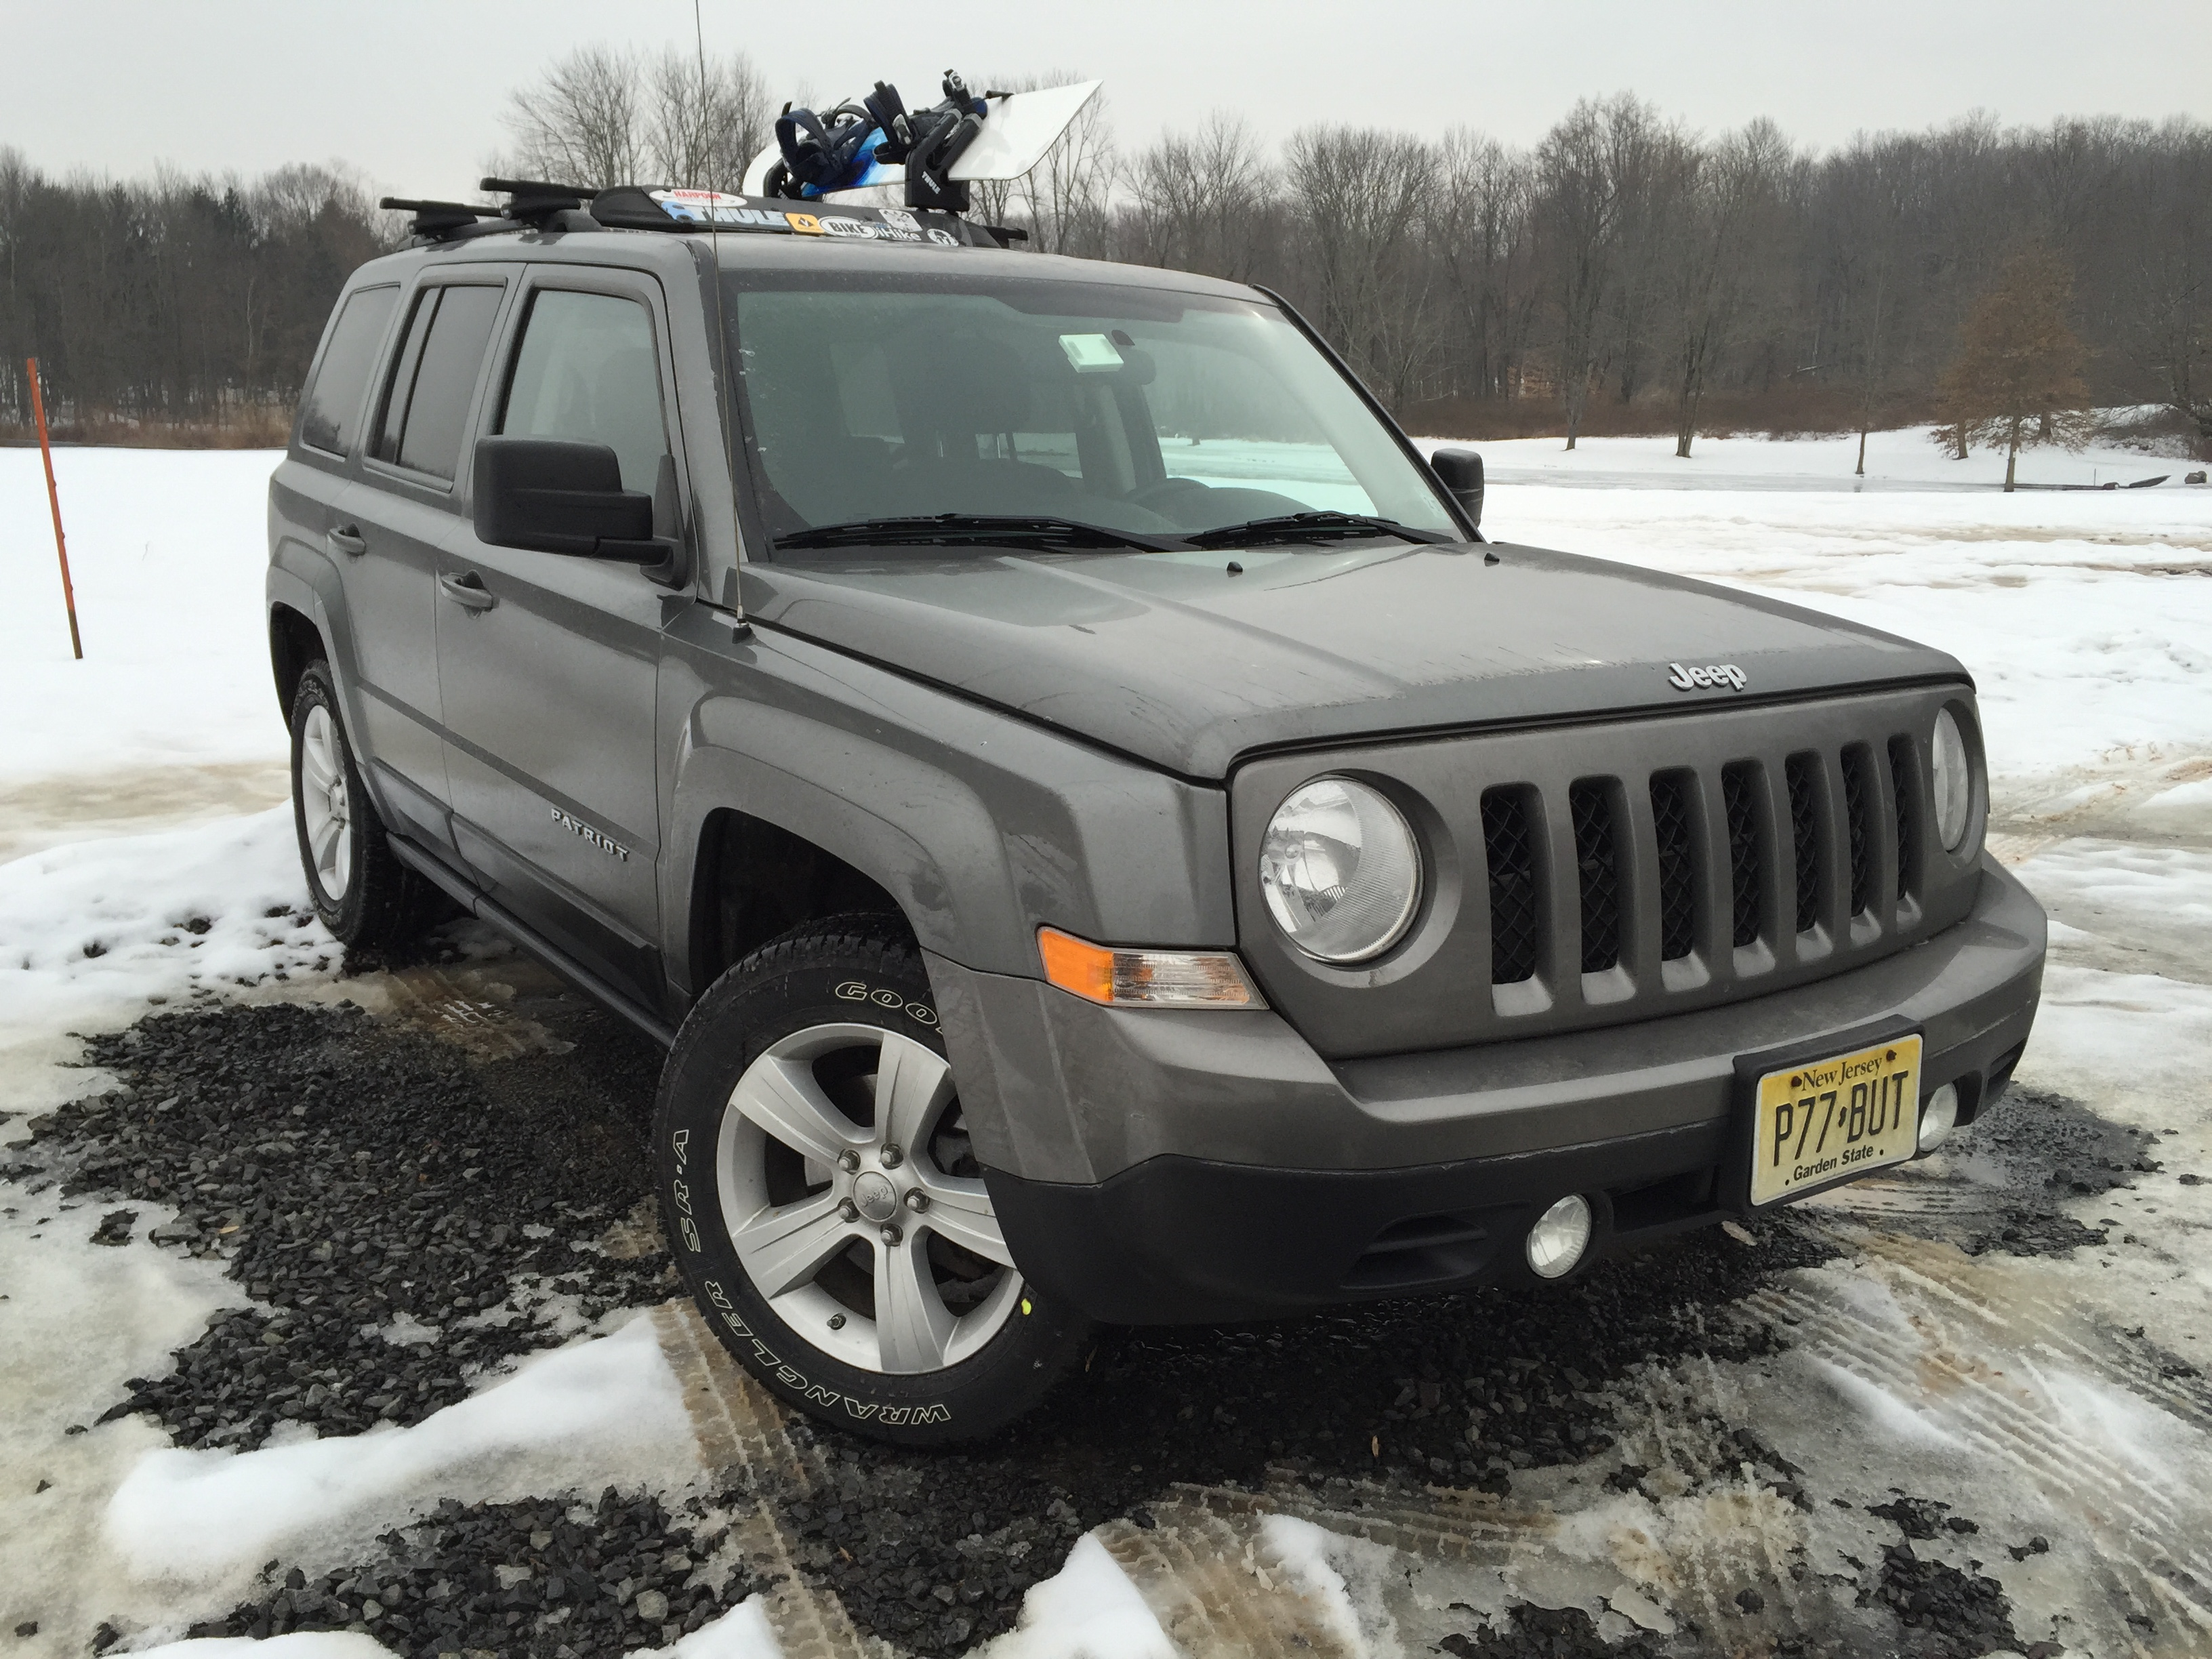 installing the thule 575 universal snowboard rack on a jeep